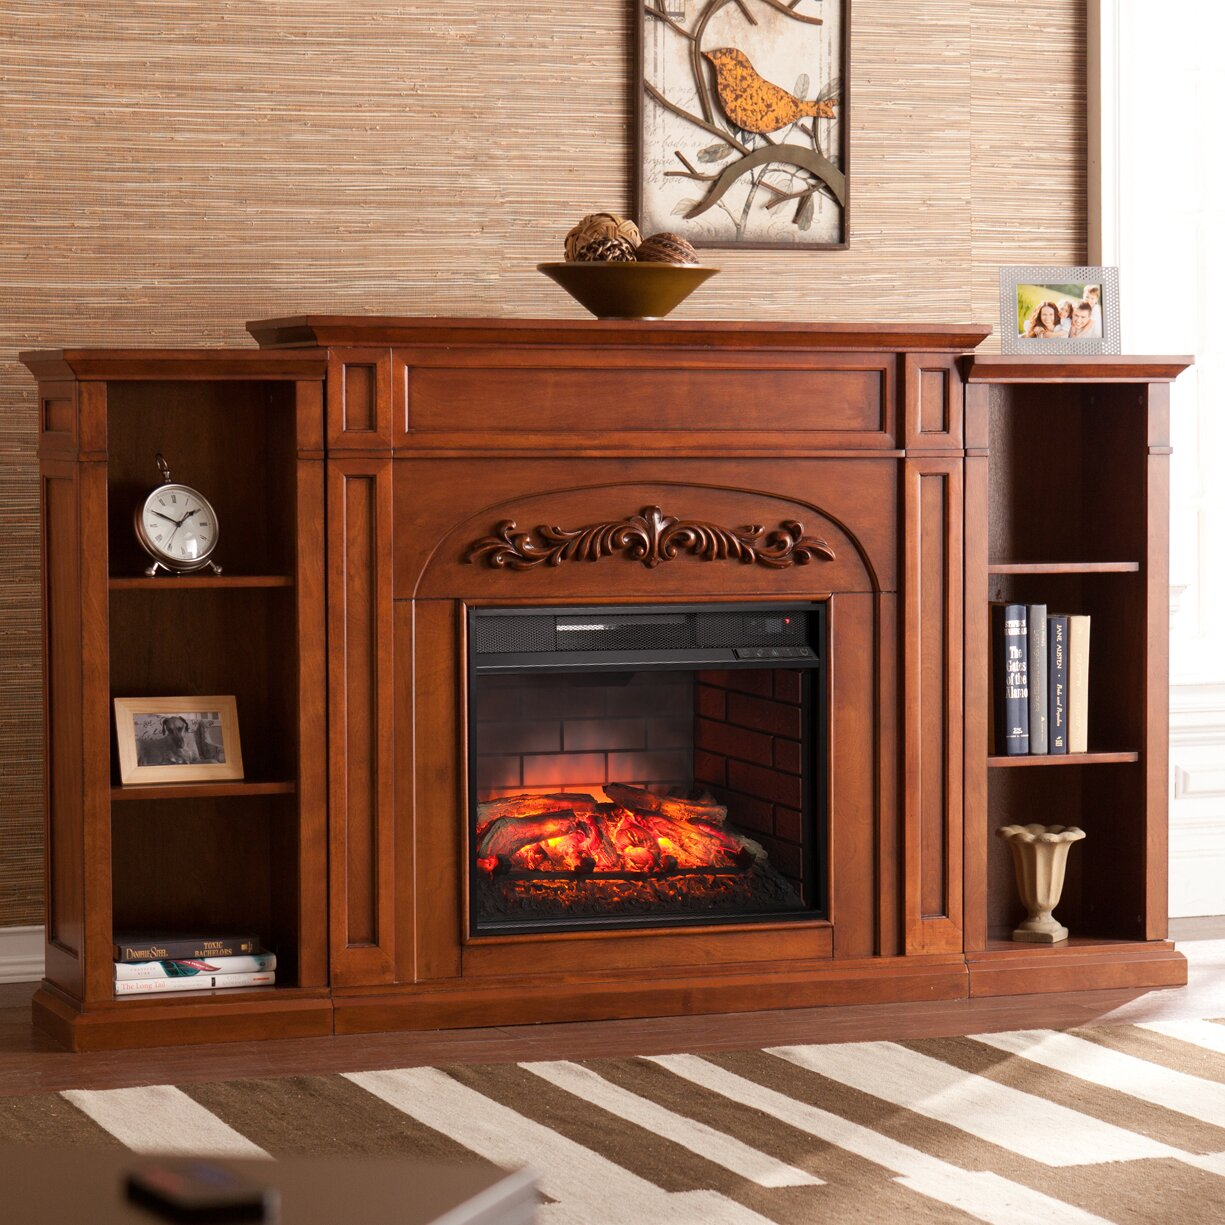 Three Posts™ Boylston Stacked Infrared Electric Fireplace - Three Posts™ Boylston Stacked Infrared Electric Fireplace